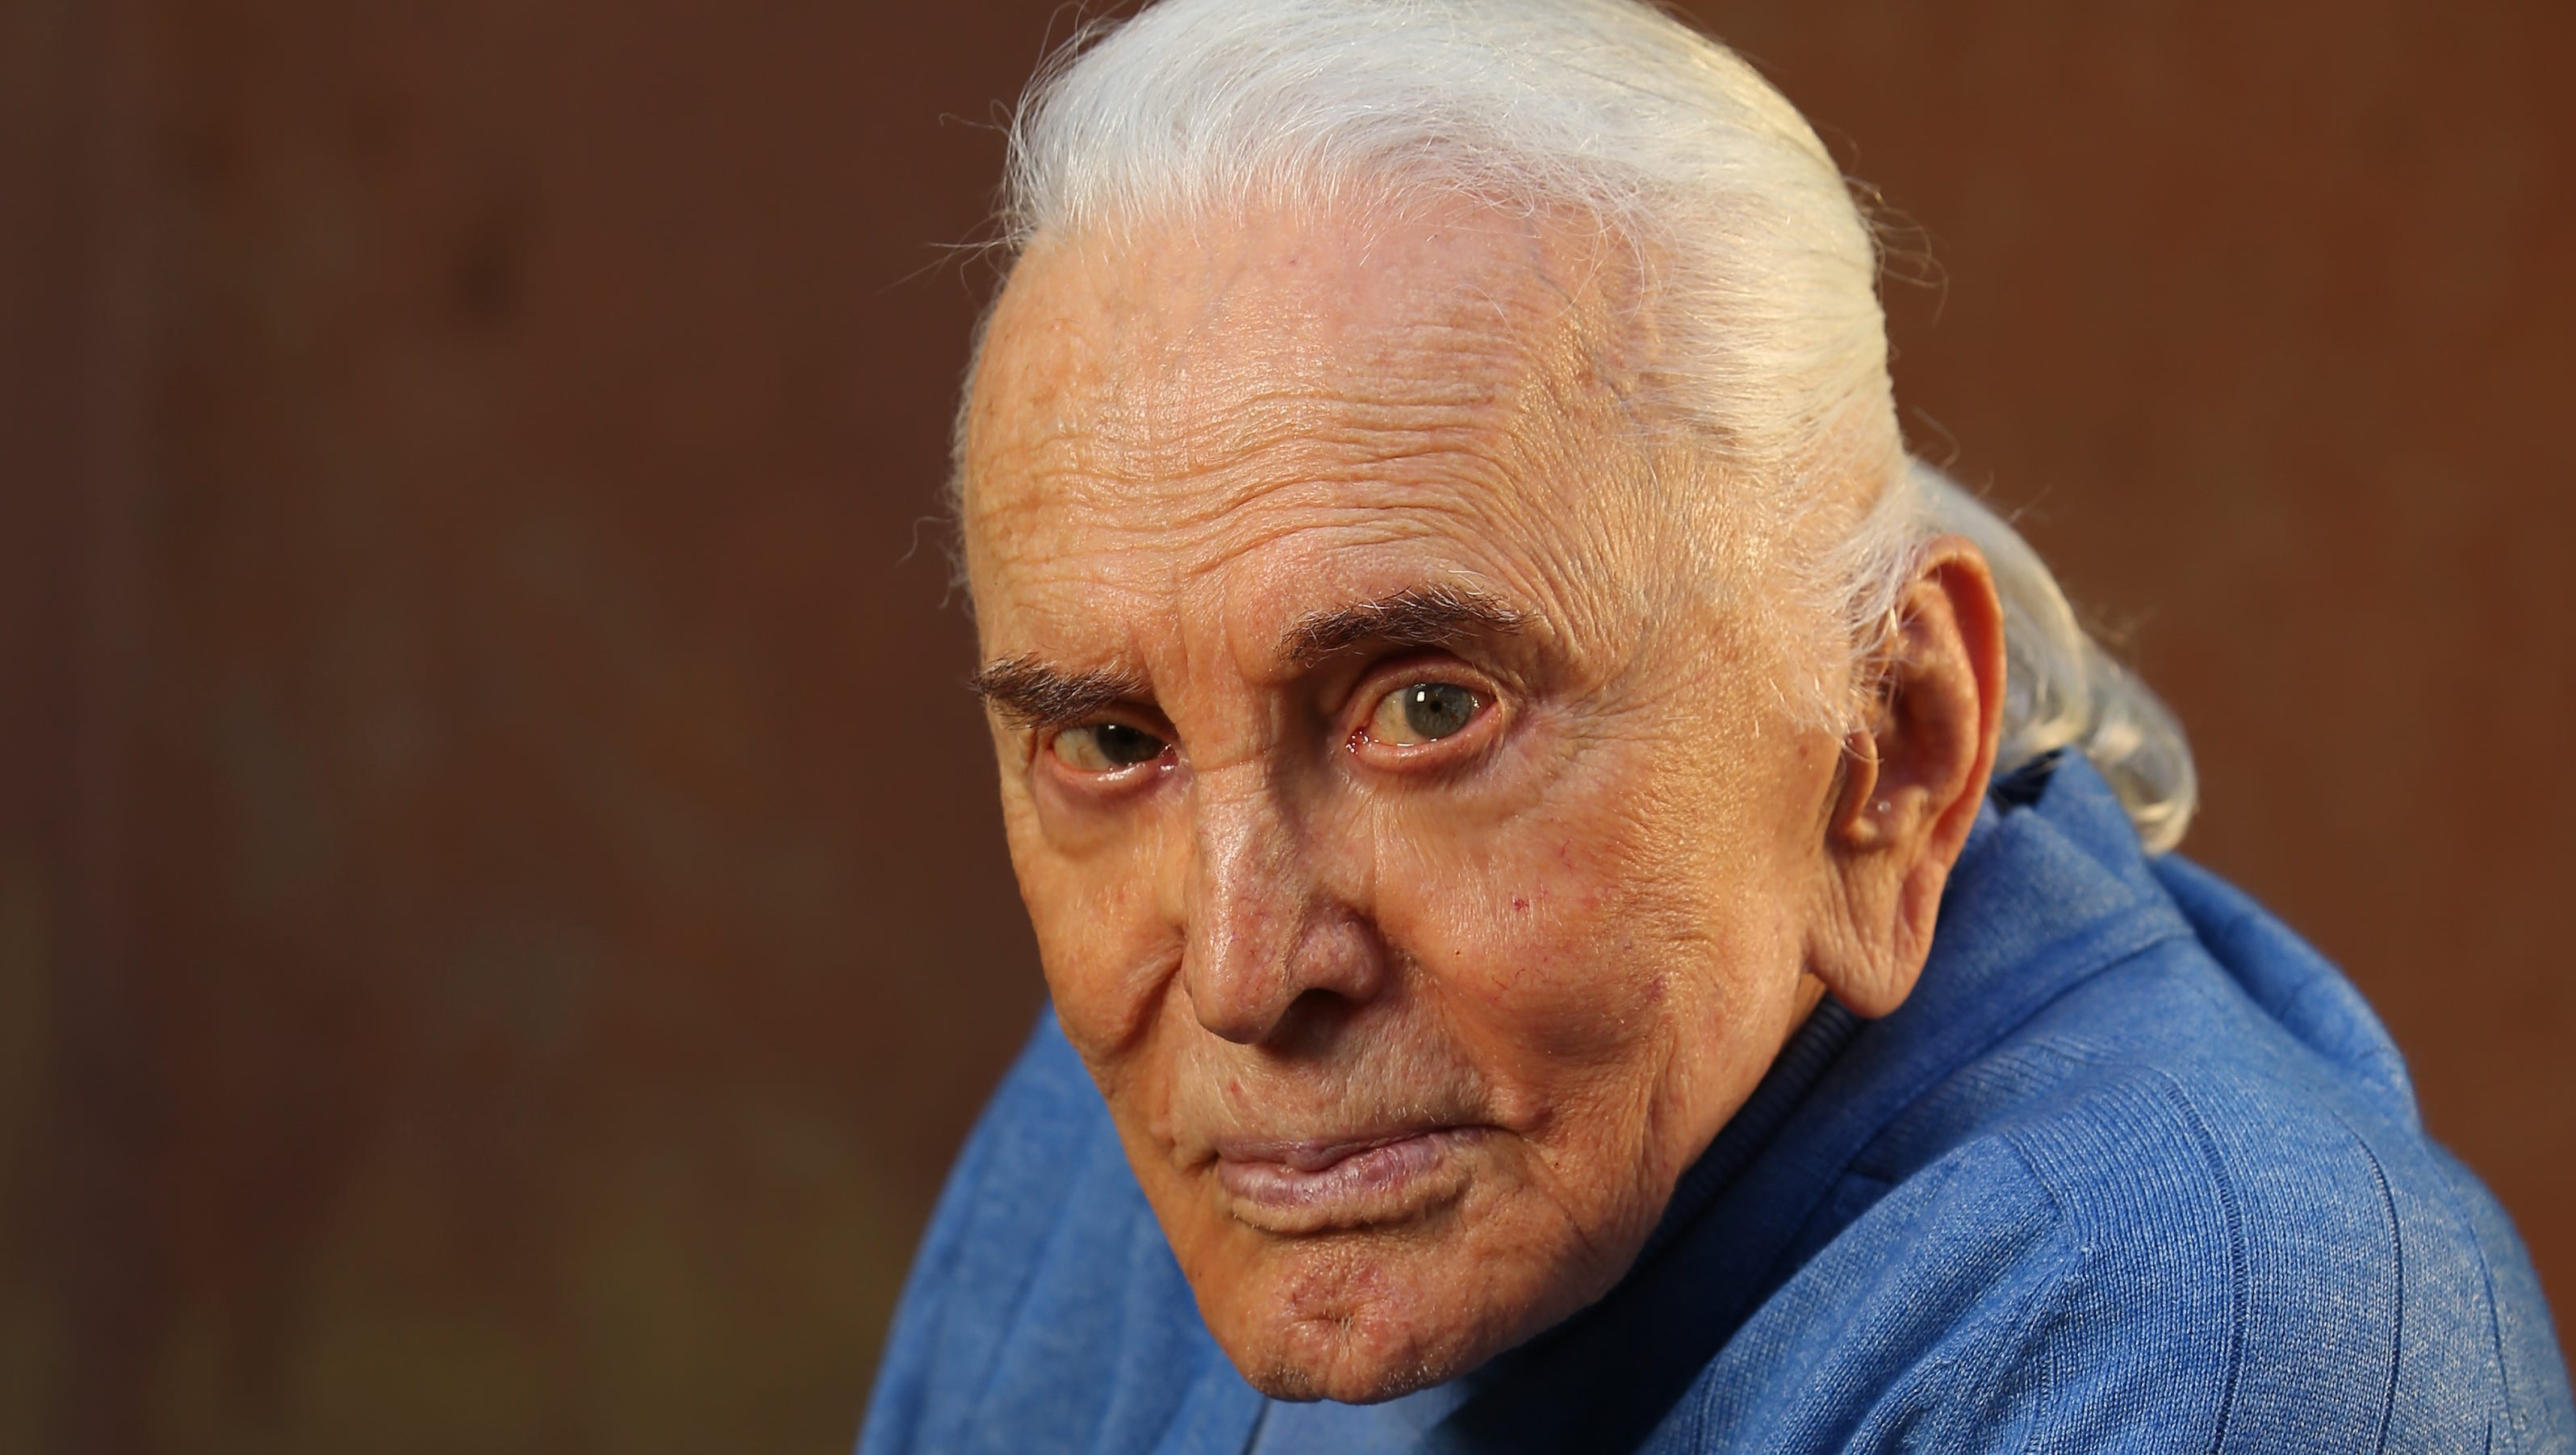 Kirk Douglas: Lessons from a legend